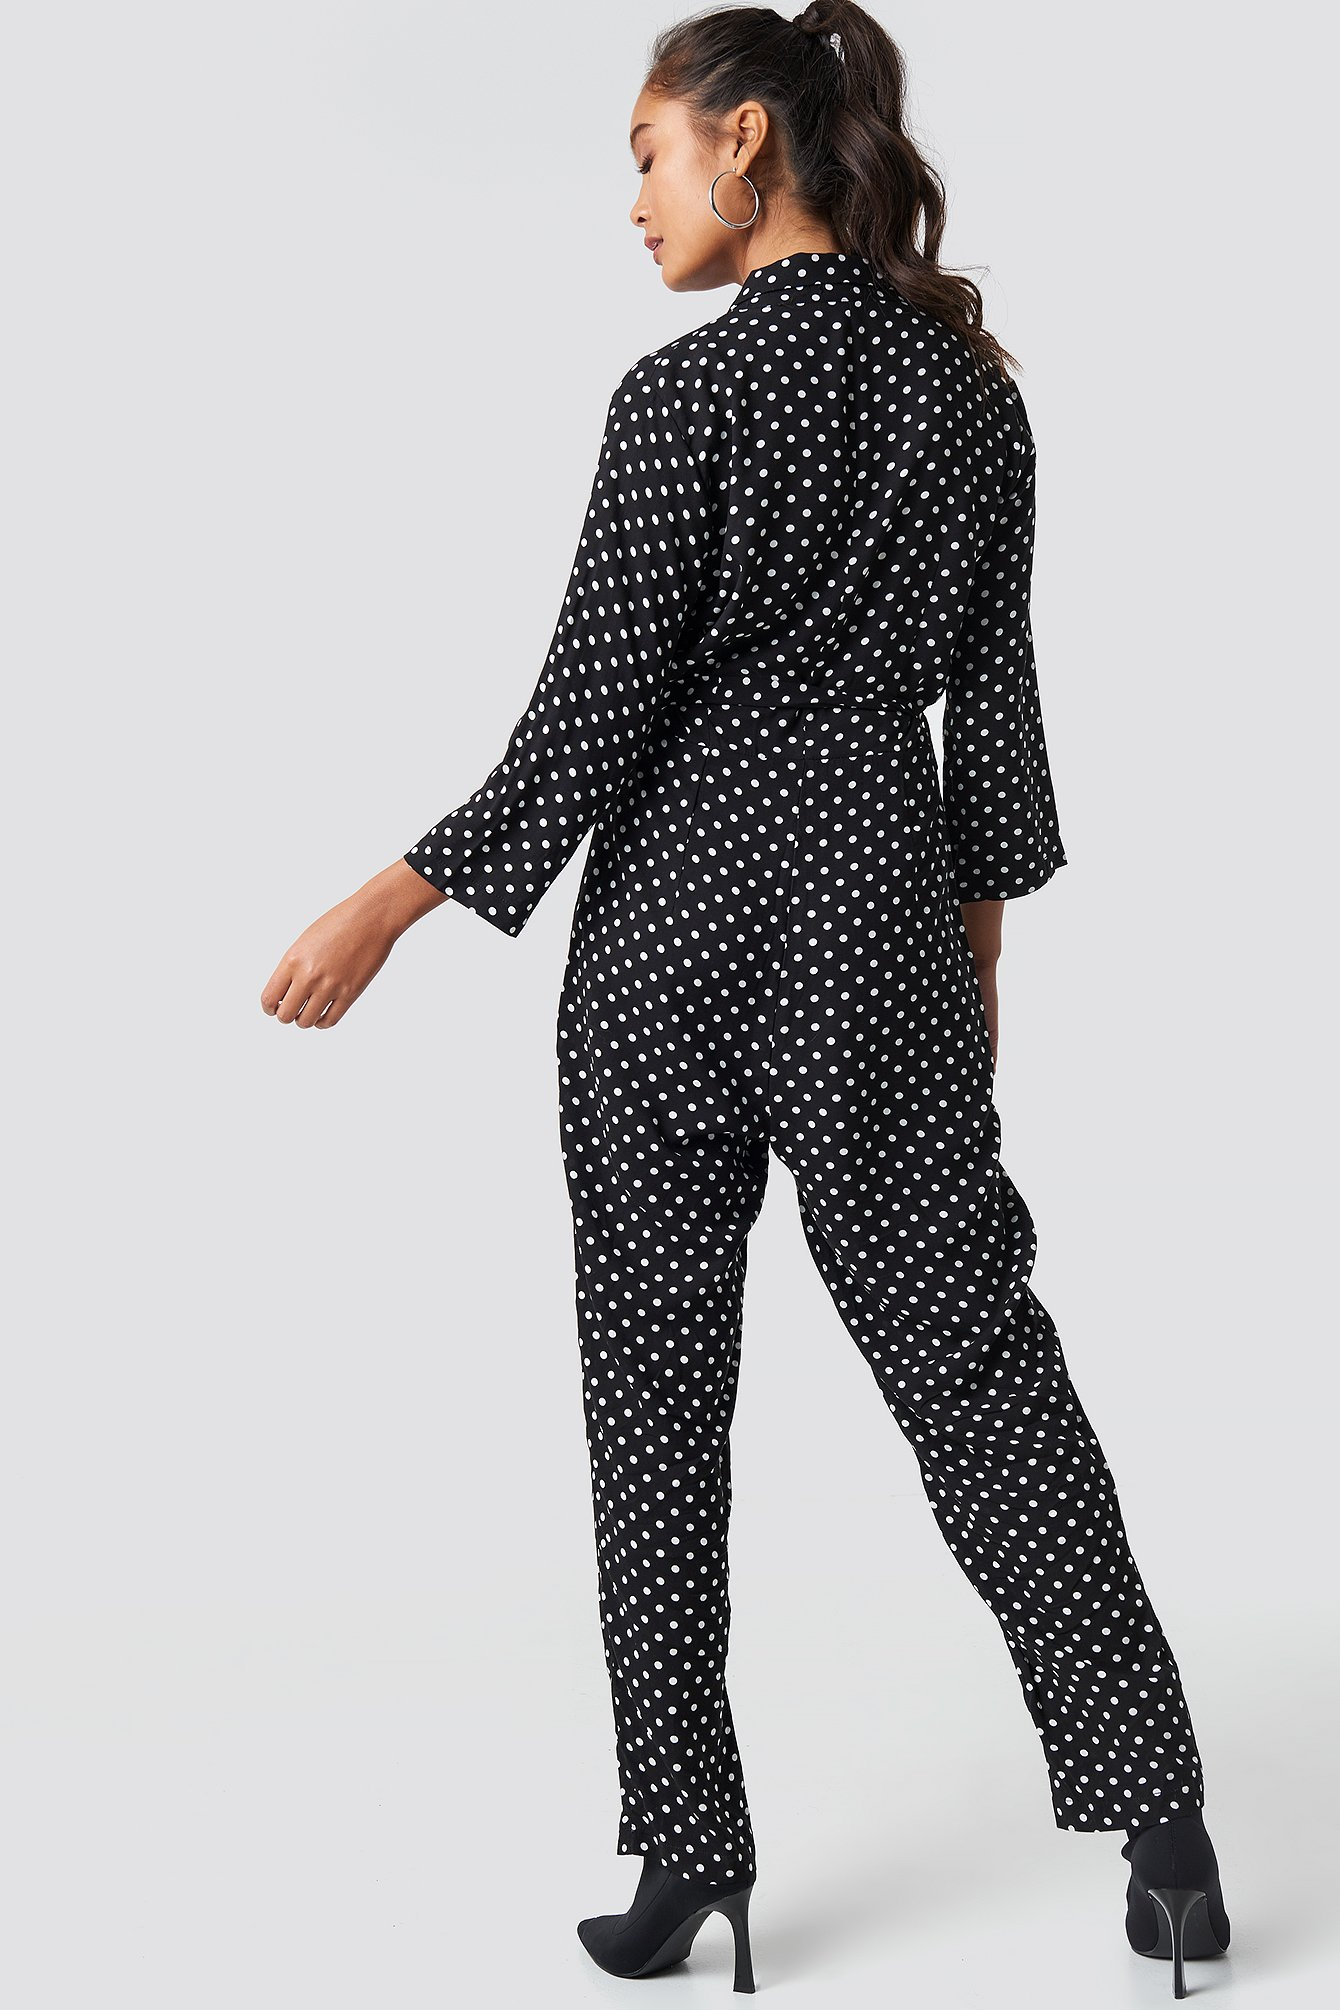 Dot Patterned Jumpsuit NA-KD.COM